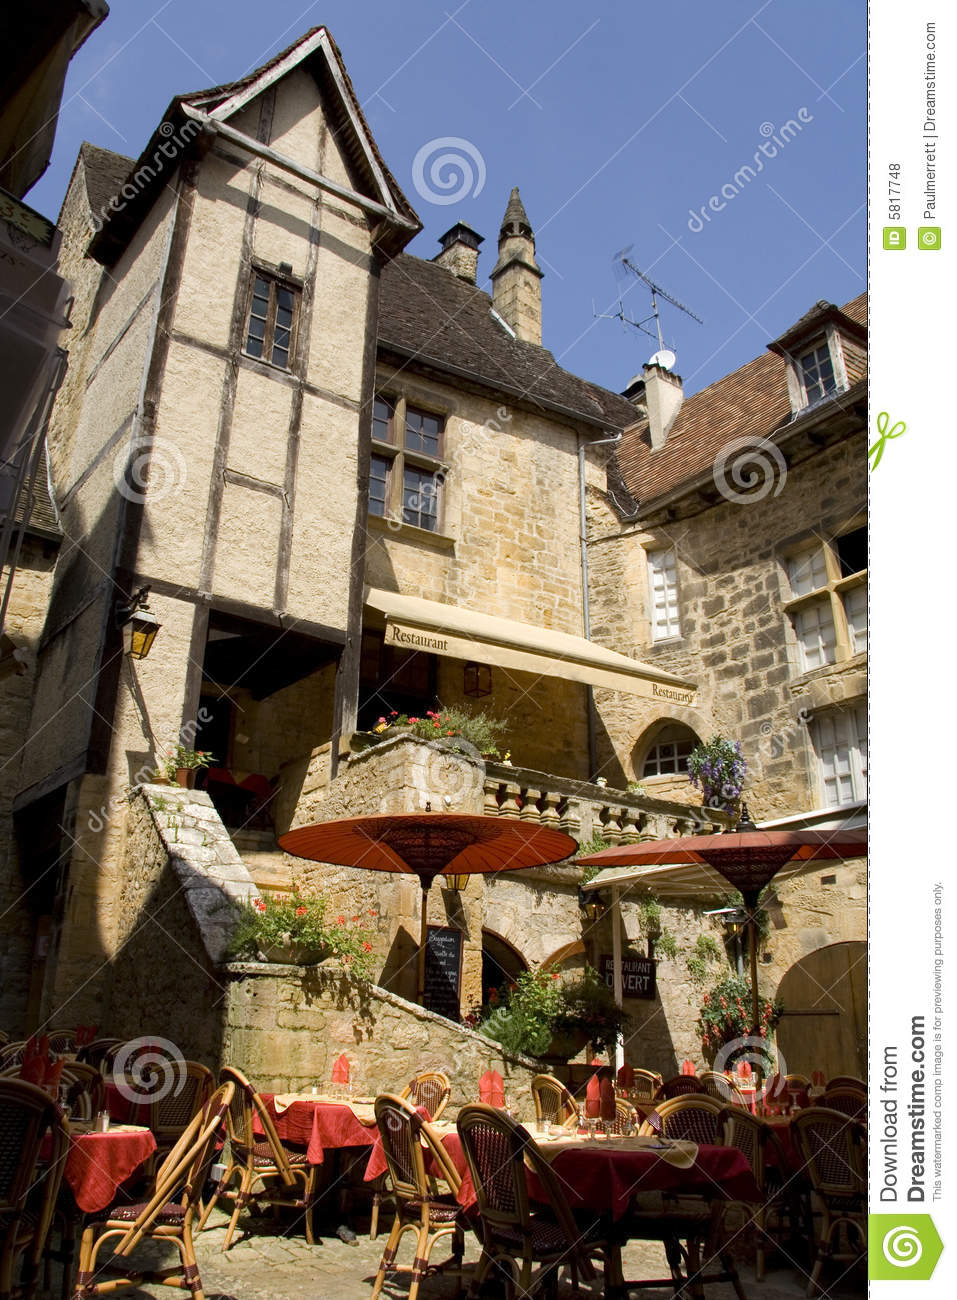 restaurant chairs for less define posture chair french stock photo. image of colours, courtyard - 5817748